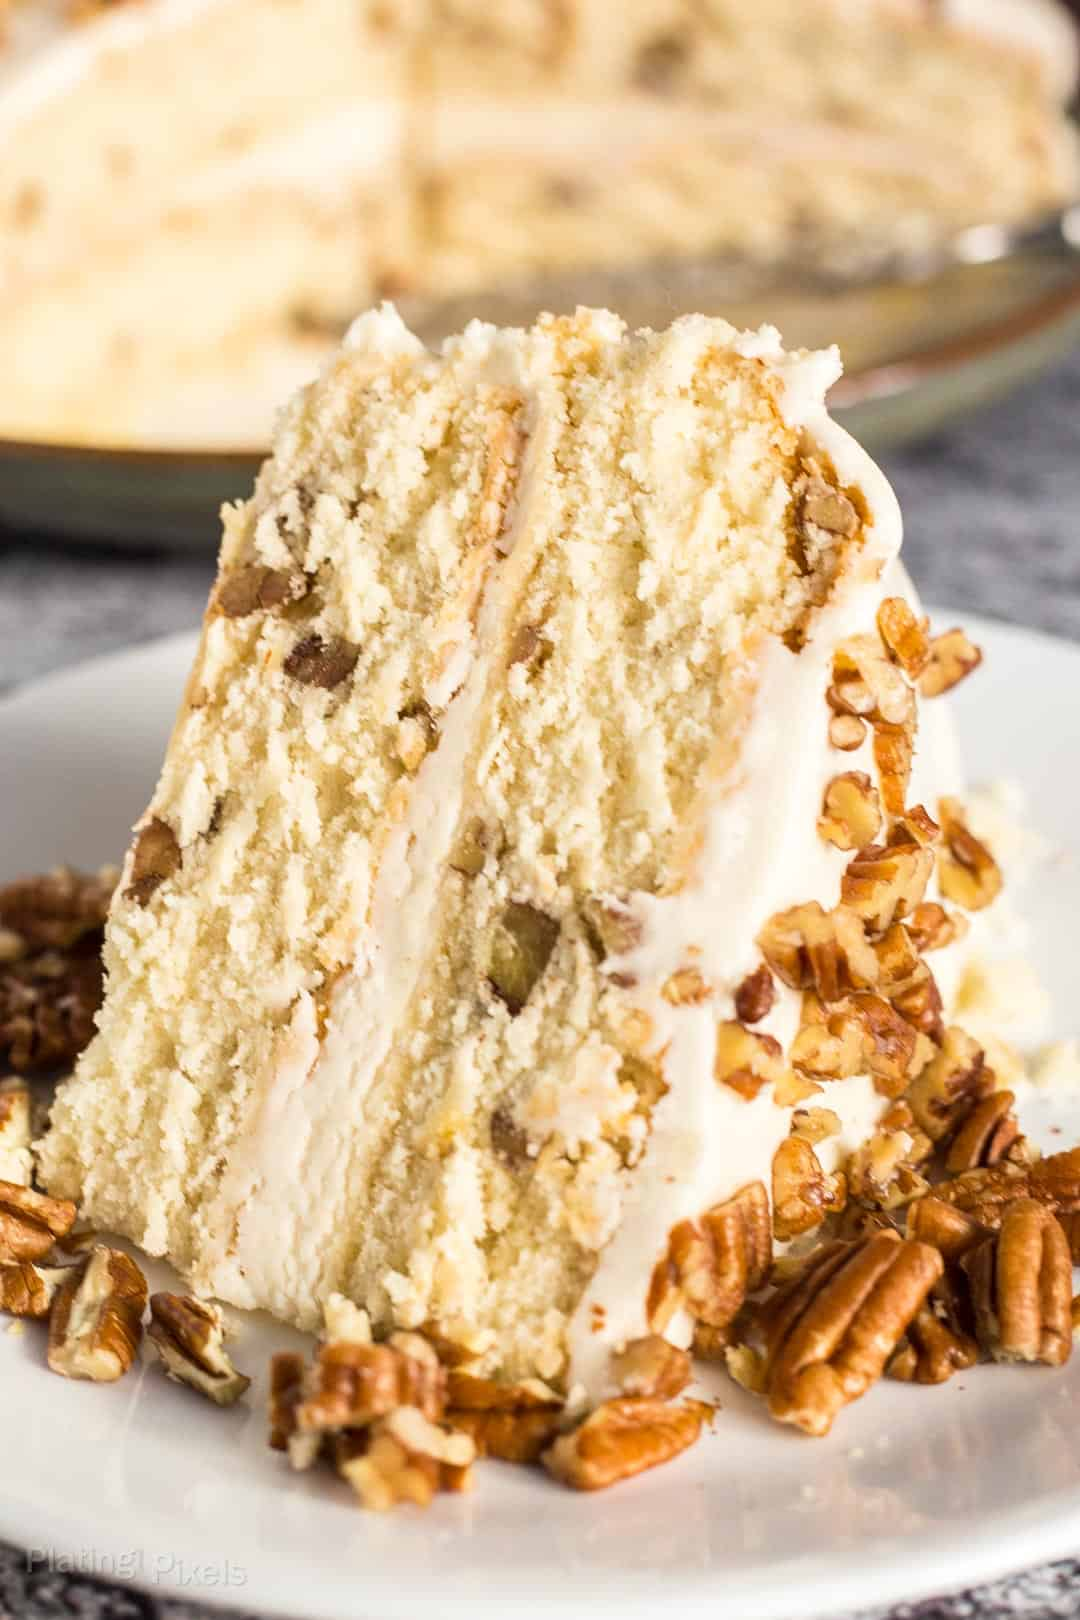 A close up of a slice of Butter Pecan Cake on a plate garnished with chopped pecans